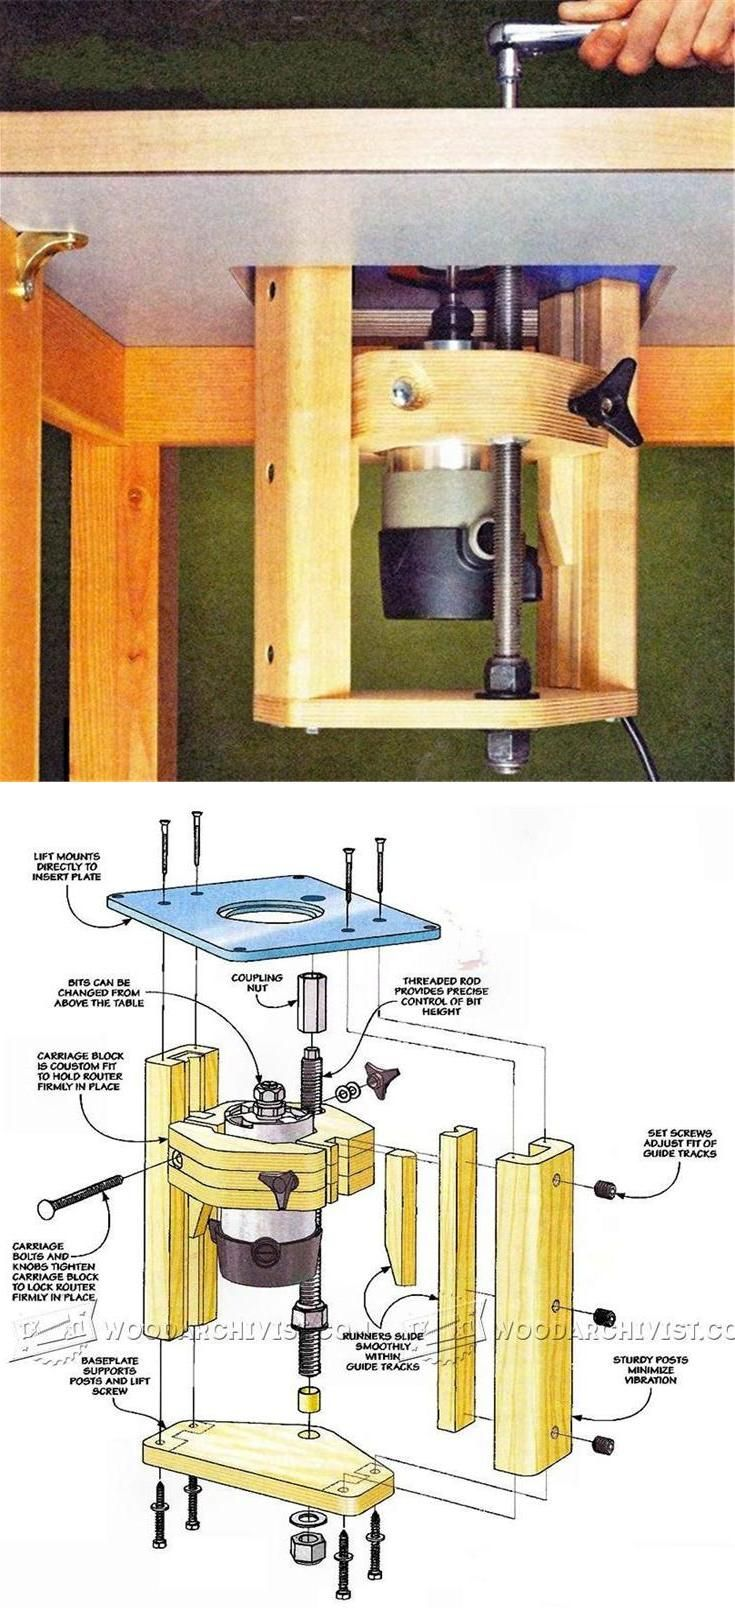 Router table lift plans router tips jigs and fixtures router table lift plans router tips jigs and fixtures woodarchivist greentooth Image collections